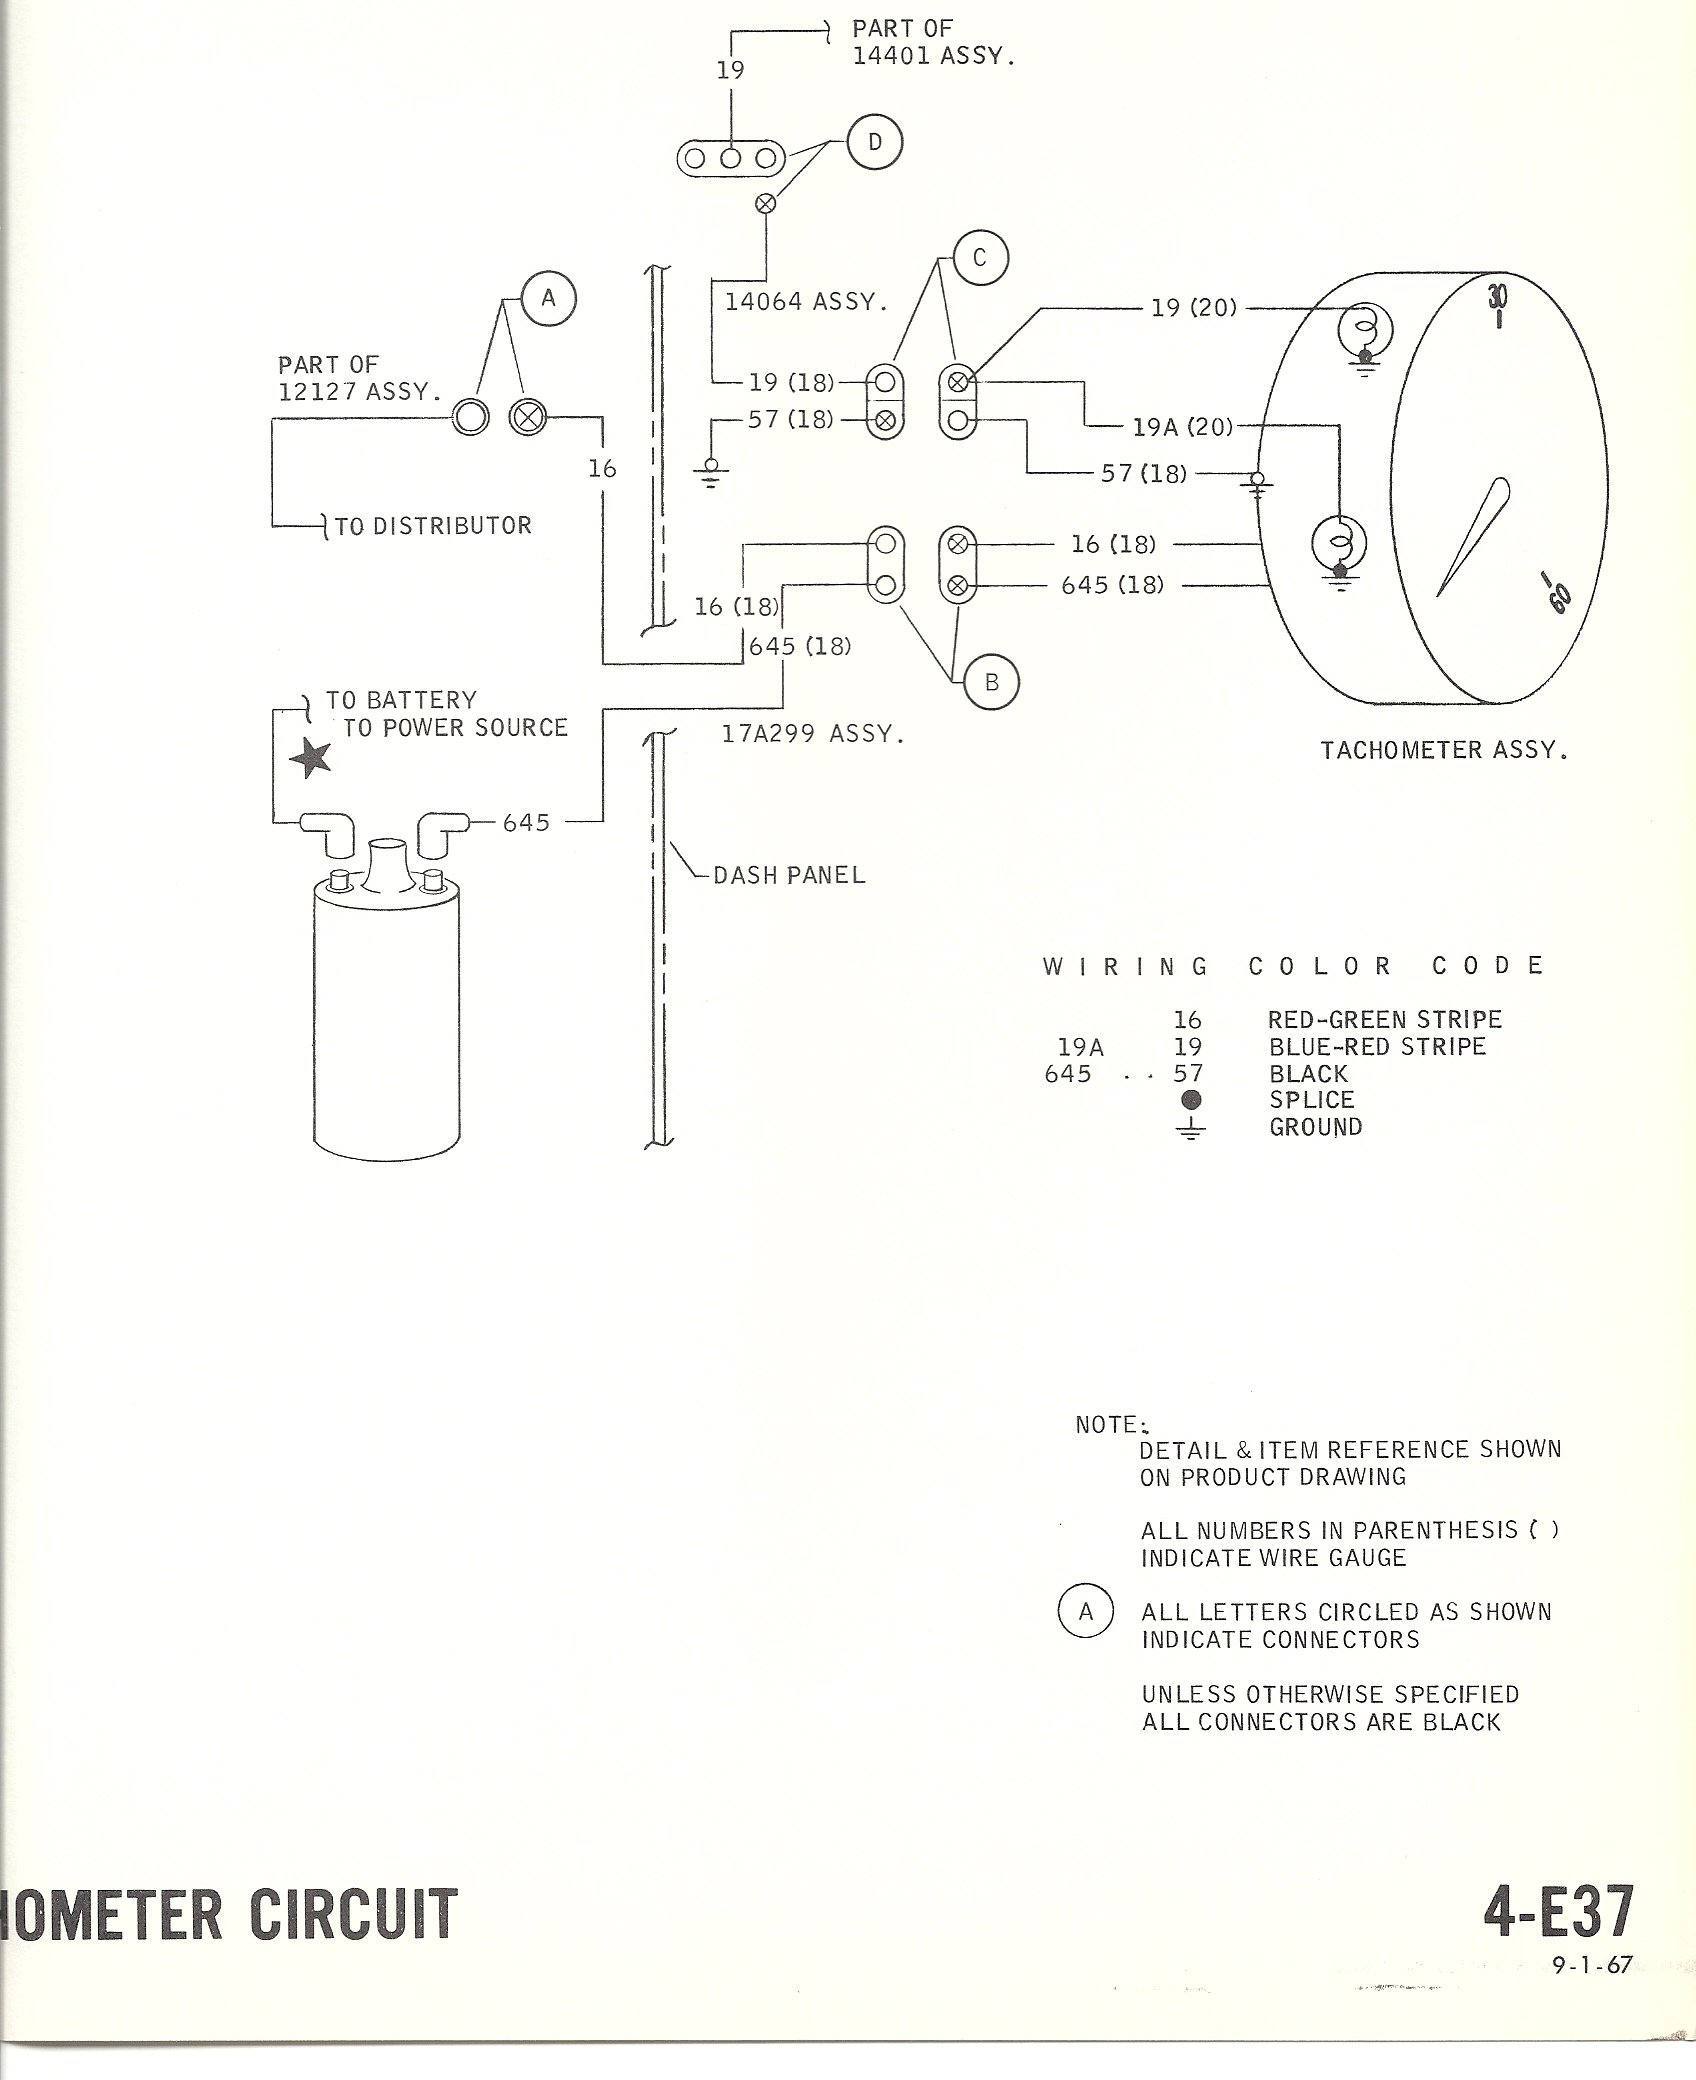 tachometer wiring diagrams wiring diagram and schematic design collection sw tachometer wiring diagram pictures wire